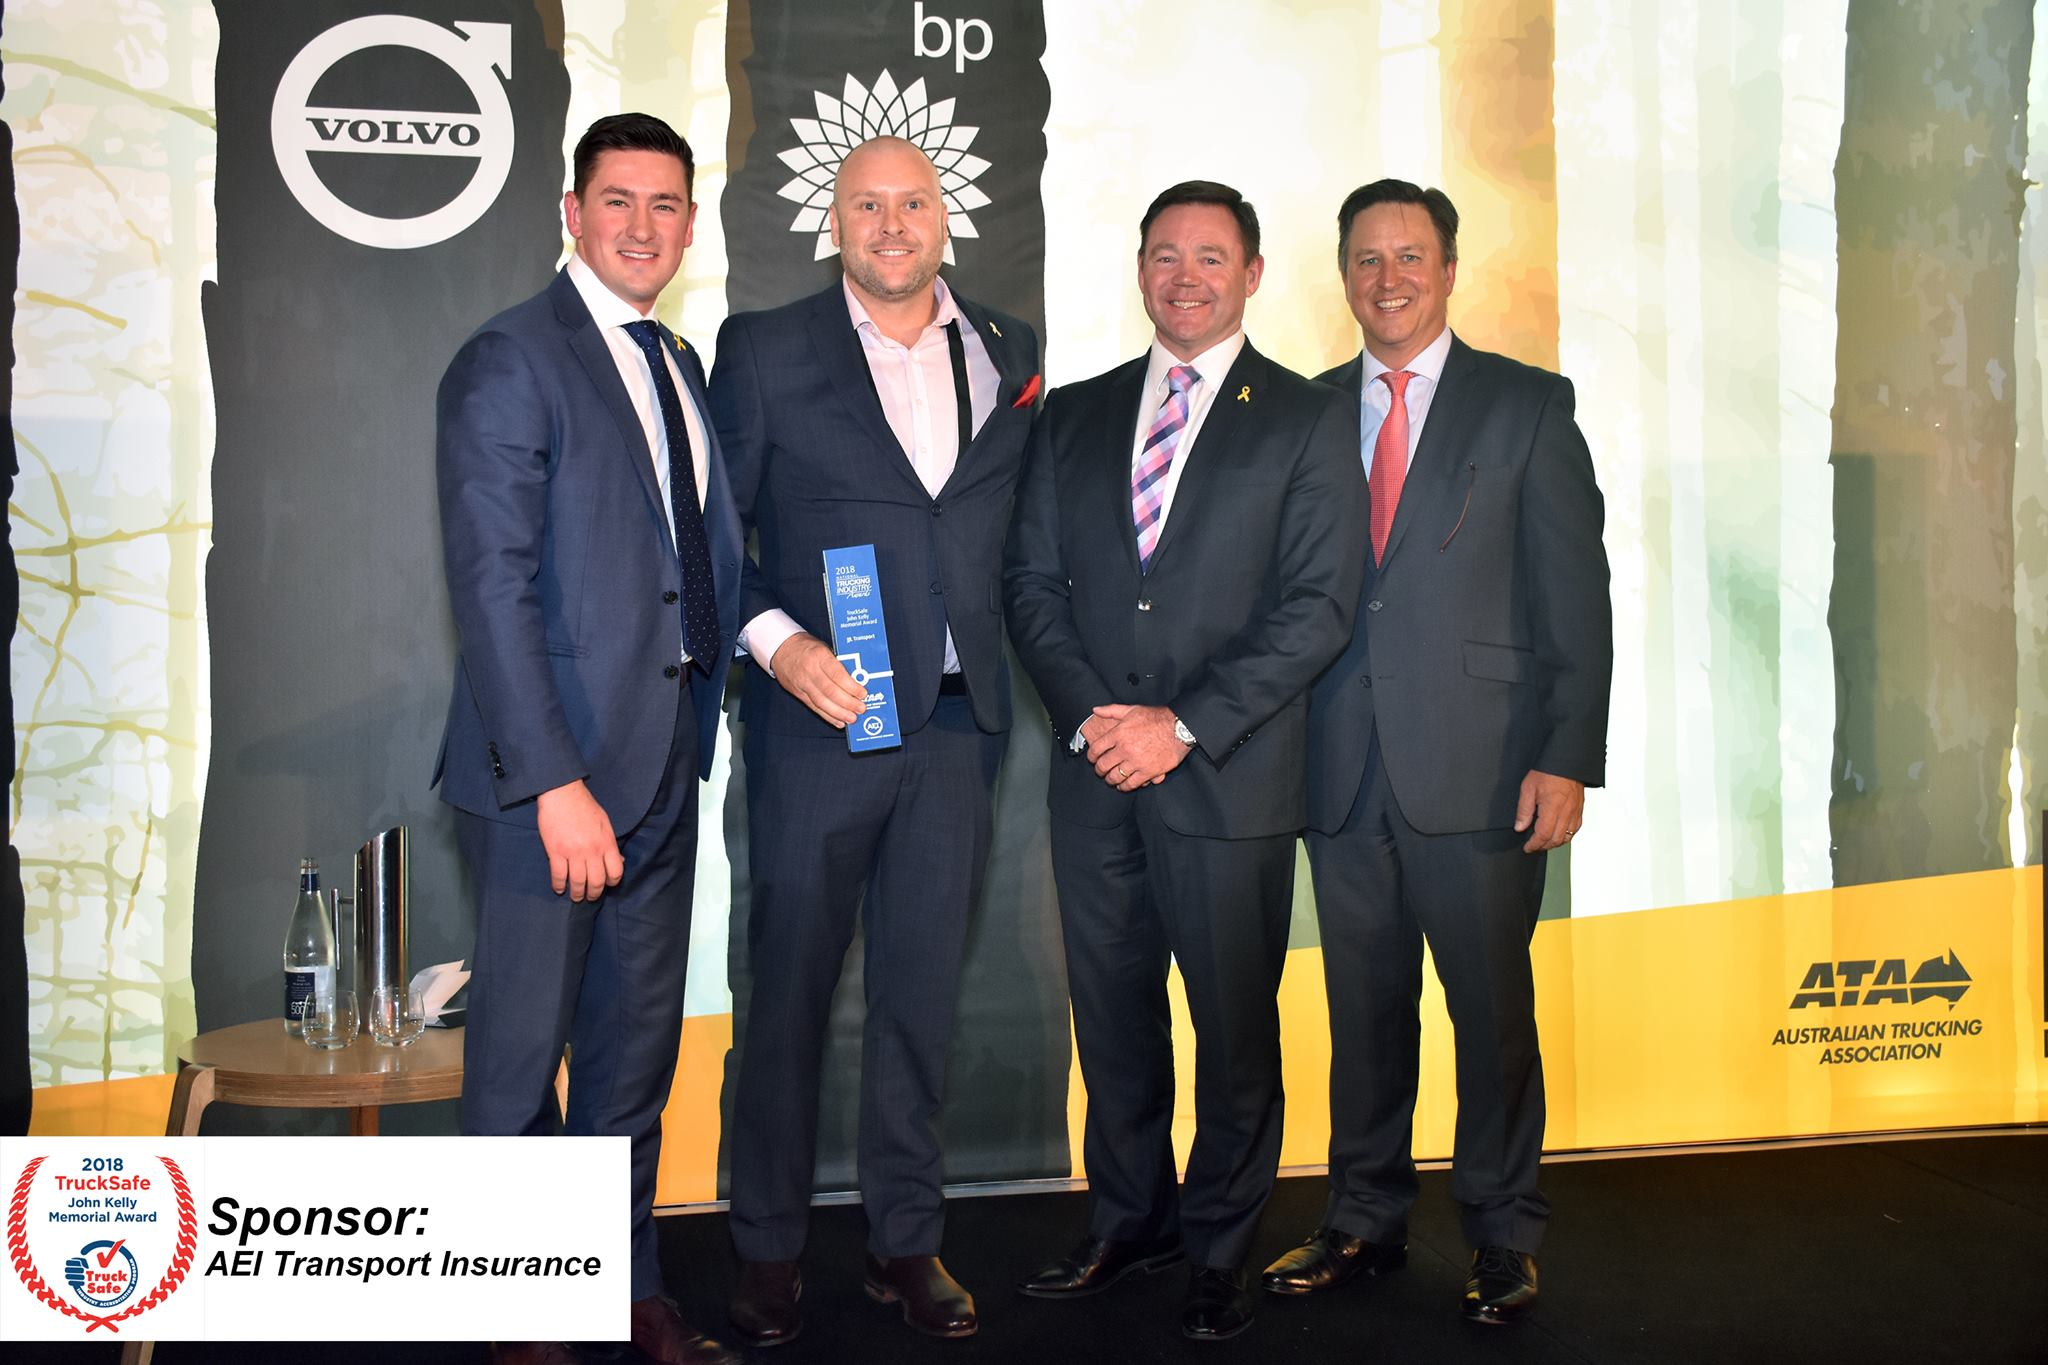 Winner of the TruckSafe John Kelly Memorial Award JJ Lawson Transport, with Noel Kelly and Tim Wedlock of AEI Transport Brokers and ATA CEO Ben Maguire